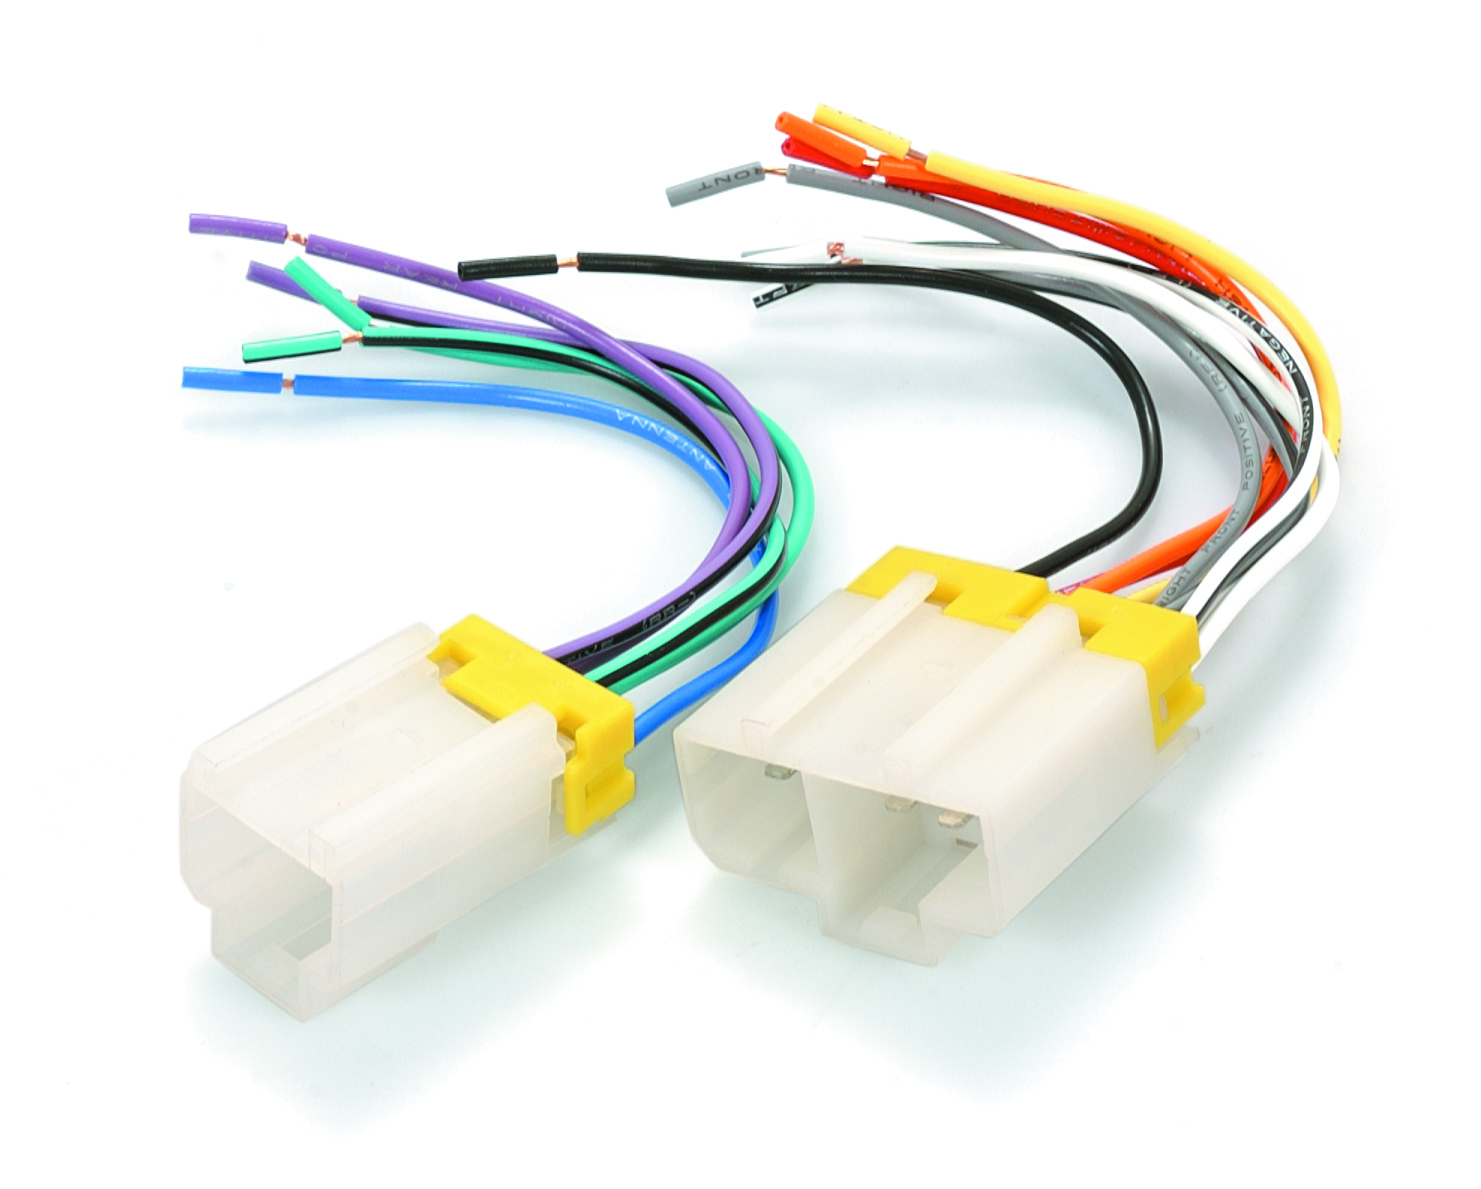 AP7551 aerpro first choice Wiring Harness Diagram at bayanpartner.co